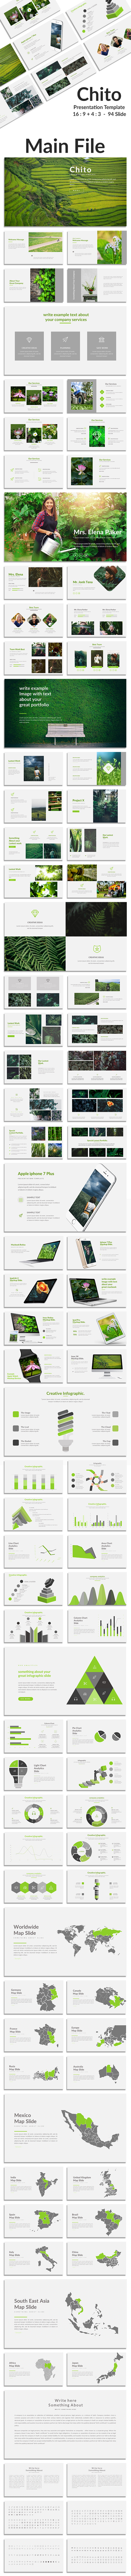 Chito Multipurpose Keynote Template - Creative Keynote Templates